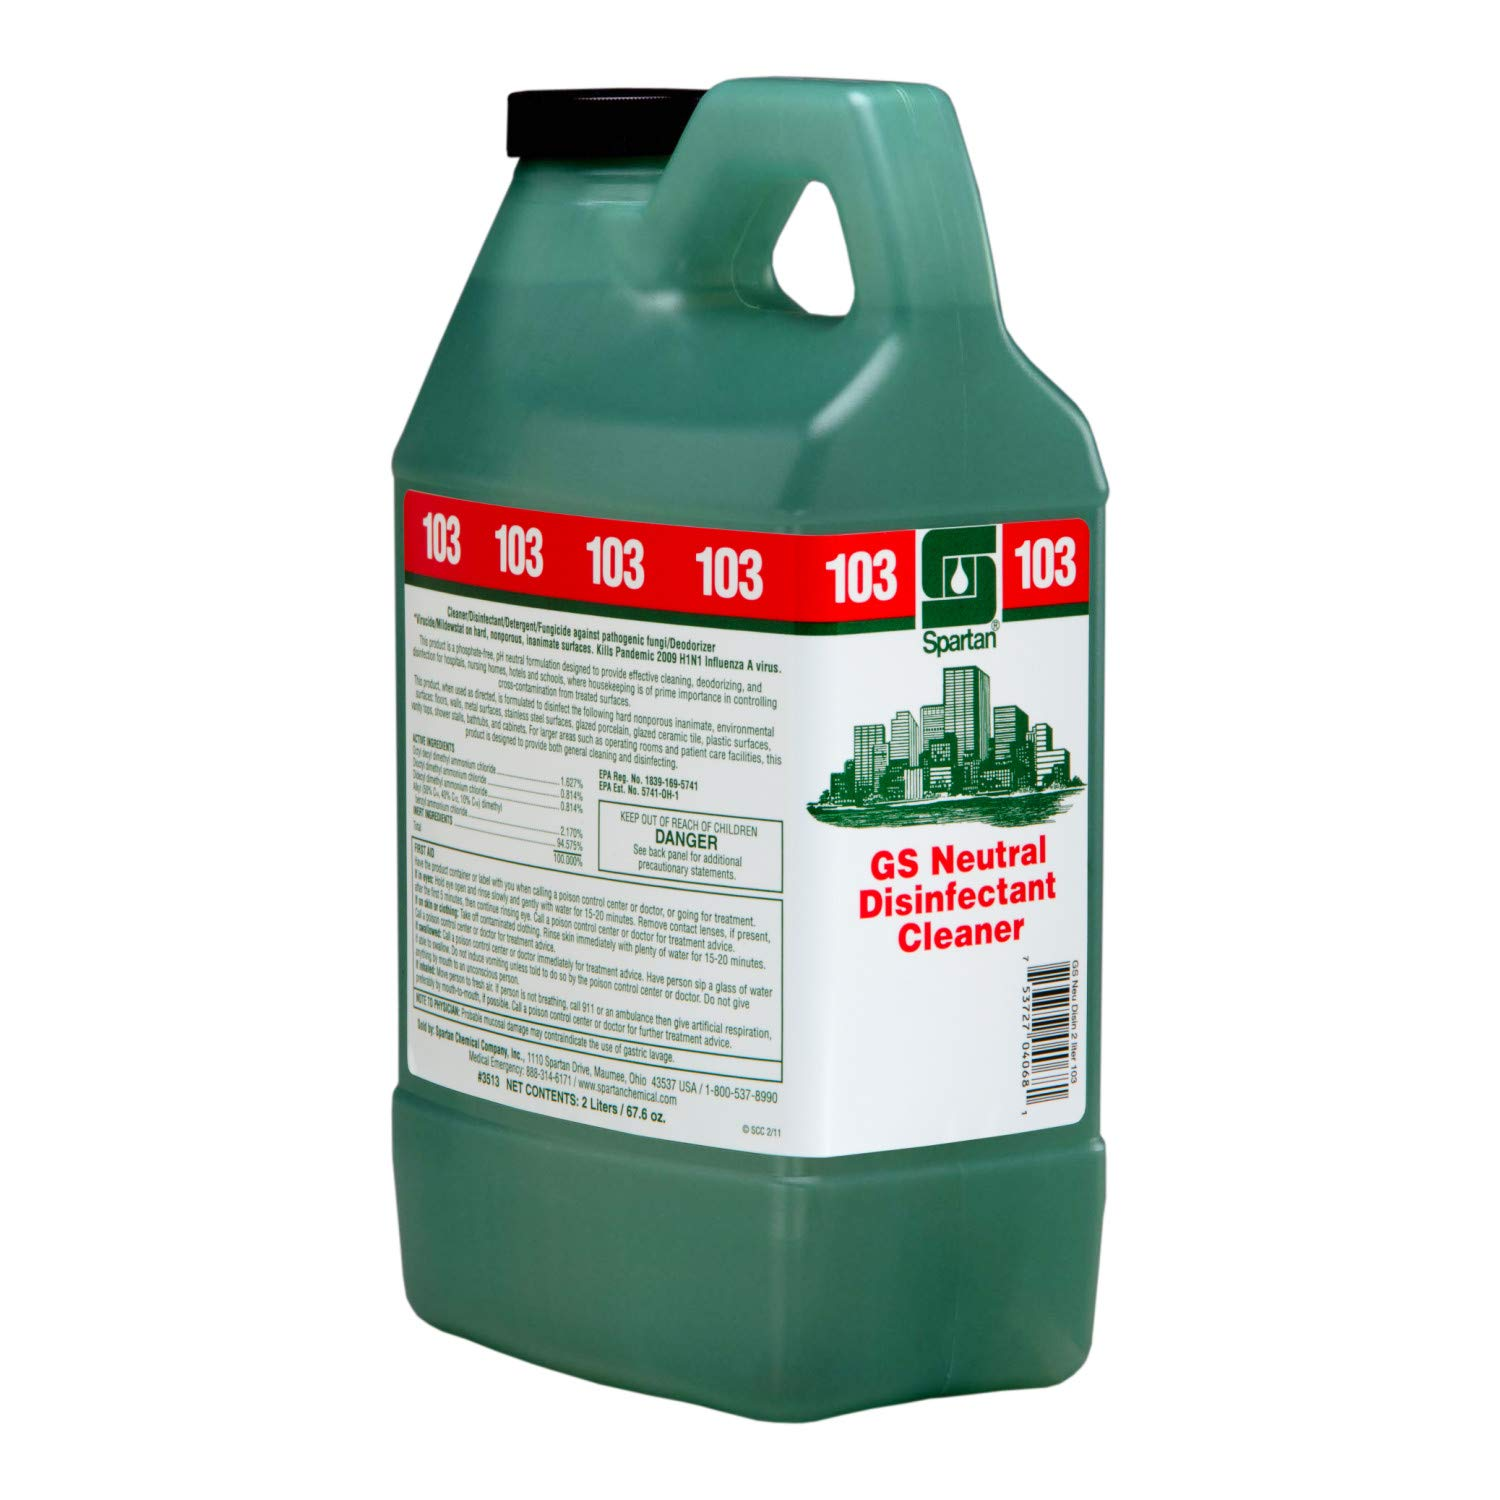 Spartan Clean on the Go Green Solutions 103 Neutral Disinfectant Cleaner, 2 Liter Bottle, 4 Bottles Per Case by SPARTAN